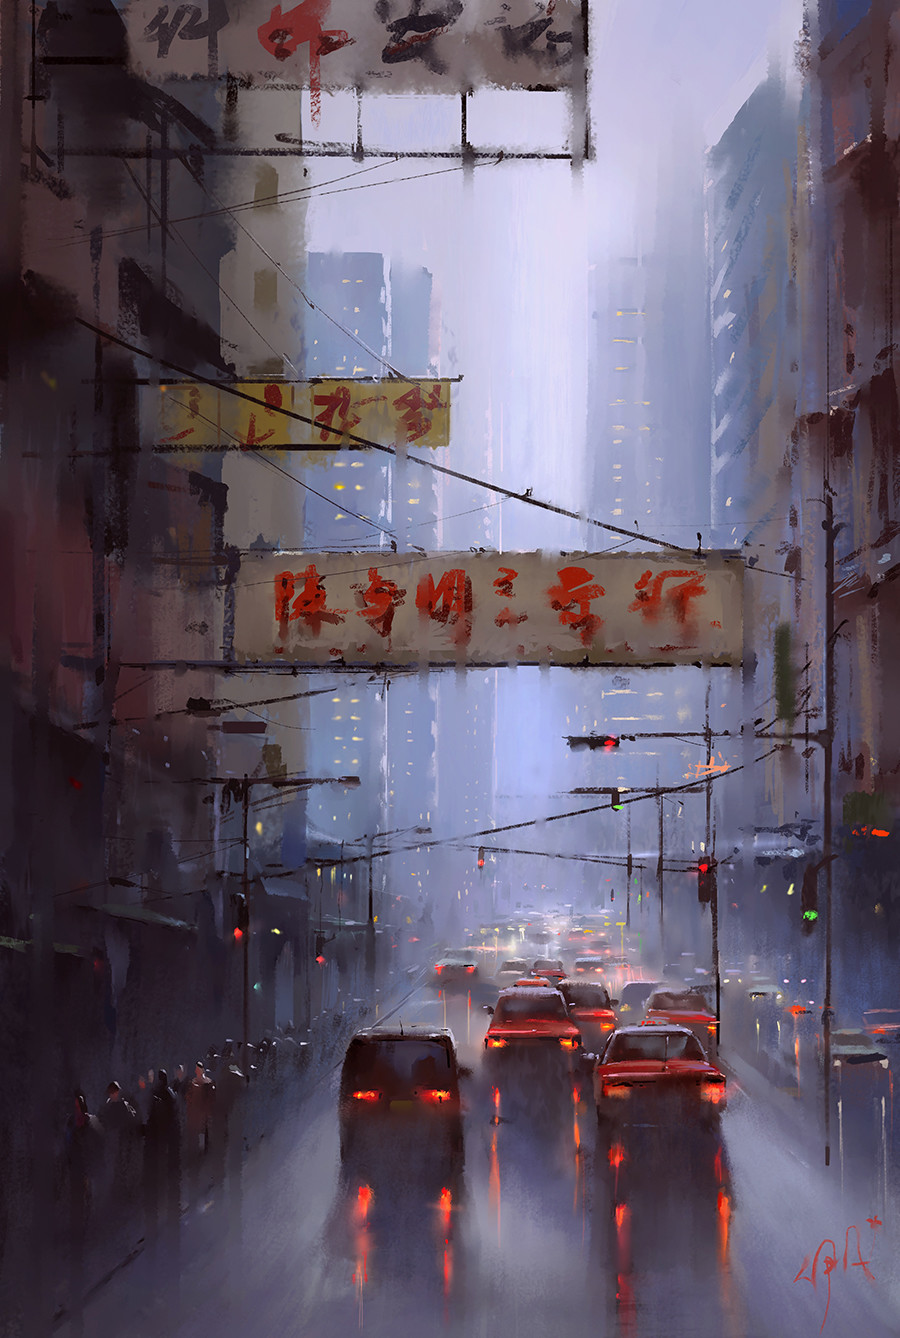 Digital Art By Chinese Artist Ivan 小红花